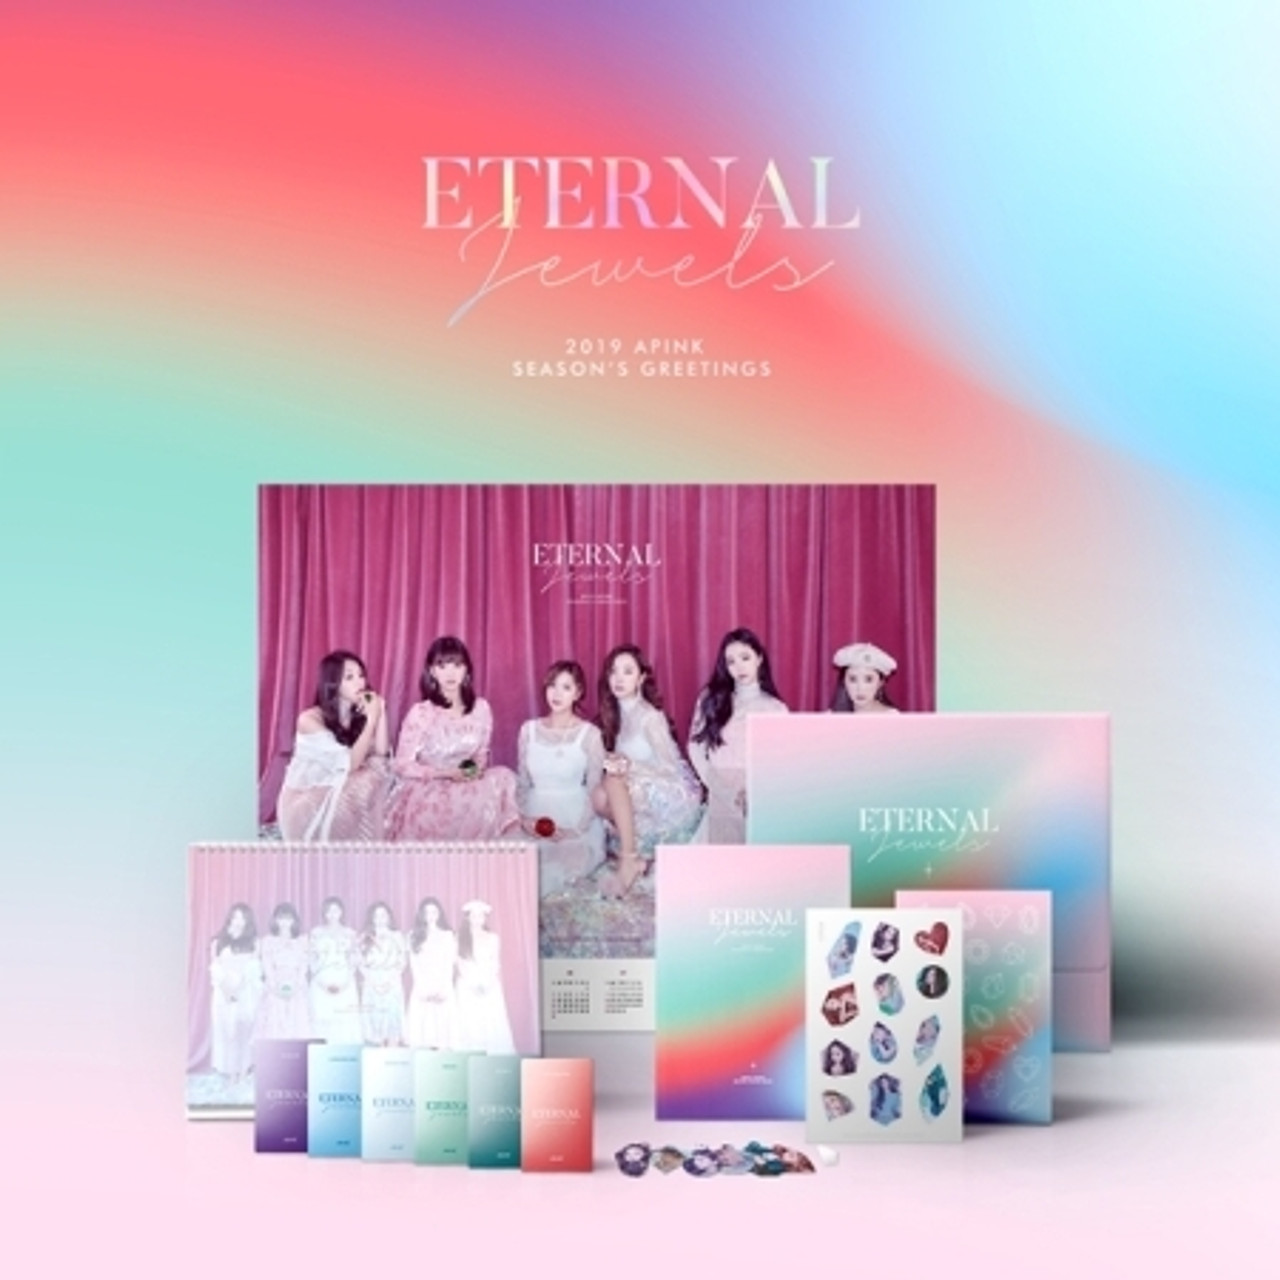 Apink - 2019 Seasons Greetings [ETERNAL JEWELS]